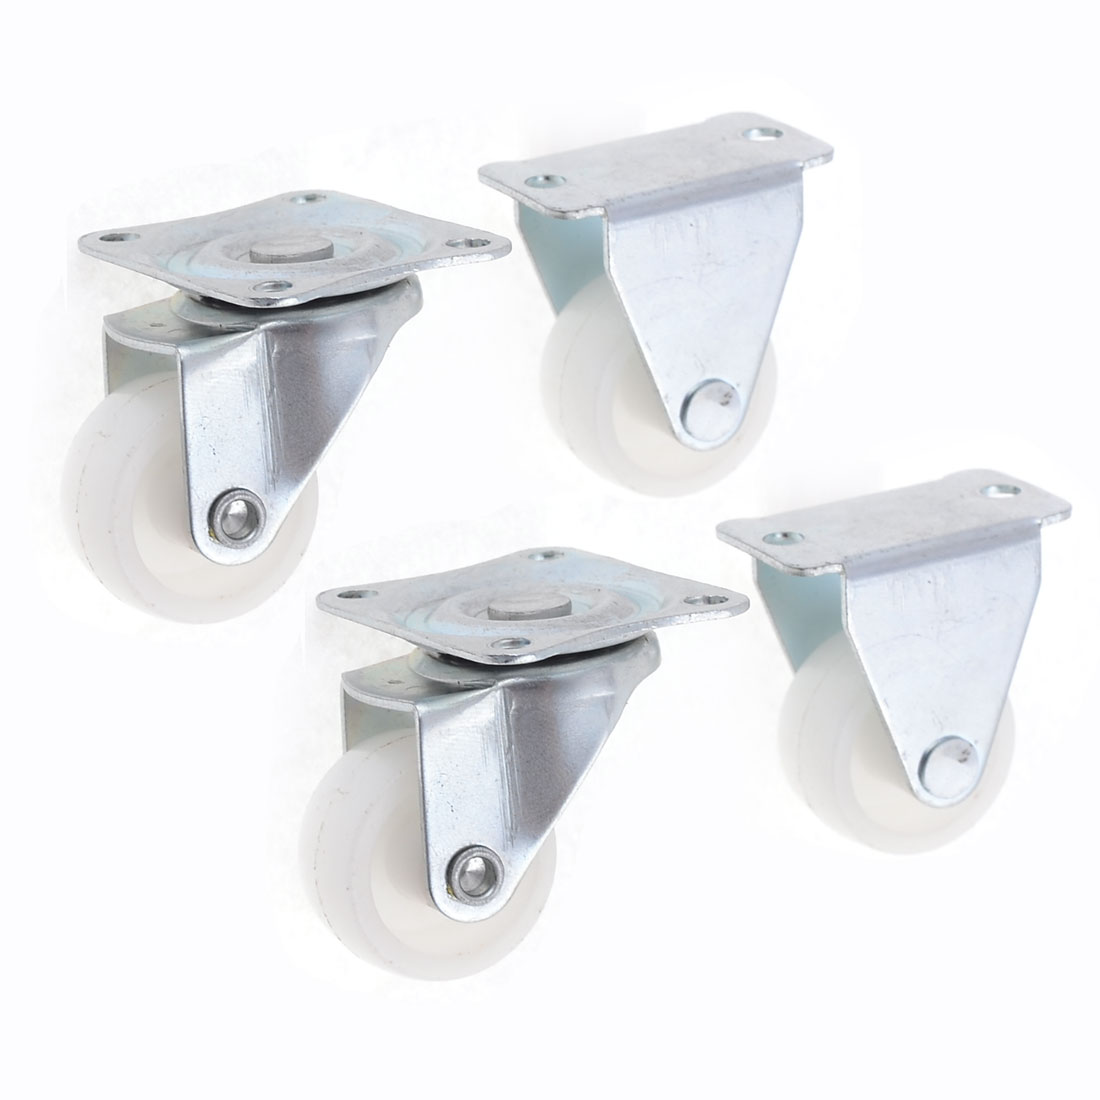 4 Pcs Rectangular Mounted Top Plate 25mm Plastic Directional Wheel Casters